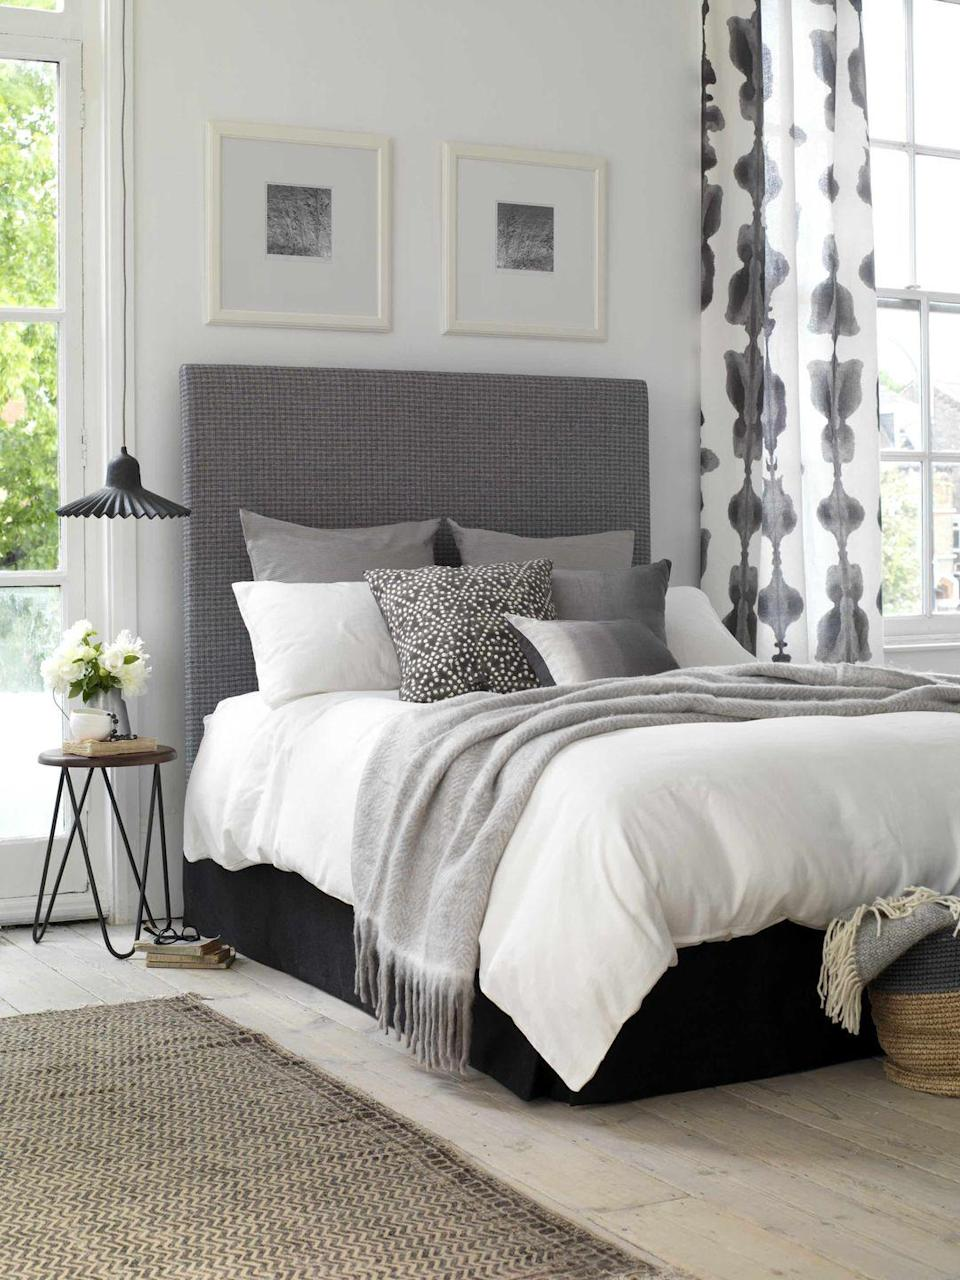 """<p>To introduce grey to a plain bedroom, start with the bed. A tall headboard has impact and immediately anchors the space. Then adding grey prints above create symmetry. Add a bold grey and white patterned curtain, grey cushions and throws, and a black pendant light for a complete look.</p><p>Top tip: Siting a bed between two windows gives it a frame and makes it easier to create your look.</p><p>Pictured: <a href=""""https://www.buttonandsprung.com/upholstered-beds/lavender/"""" rel=""""nofollow noopener"""" target=""""_blank"""" data-ylk=""""slk:Lavender double divan, Button & Sprung"""" class=""""link rapid-noclick-resp"""">Lavender double divan, Button & Sprung</a></p>"""